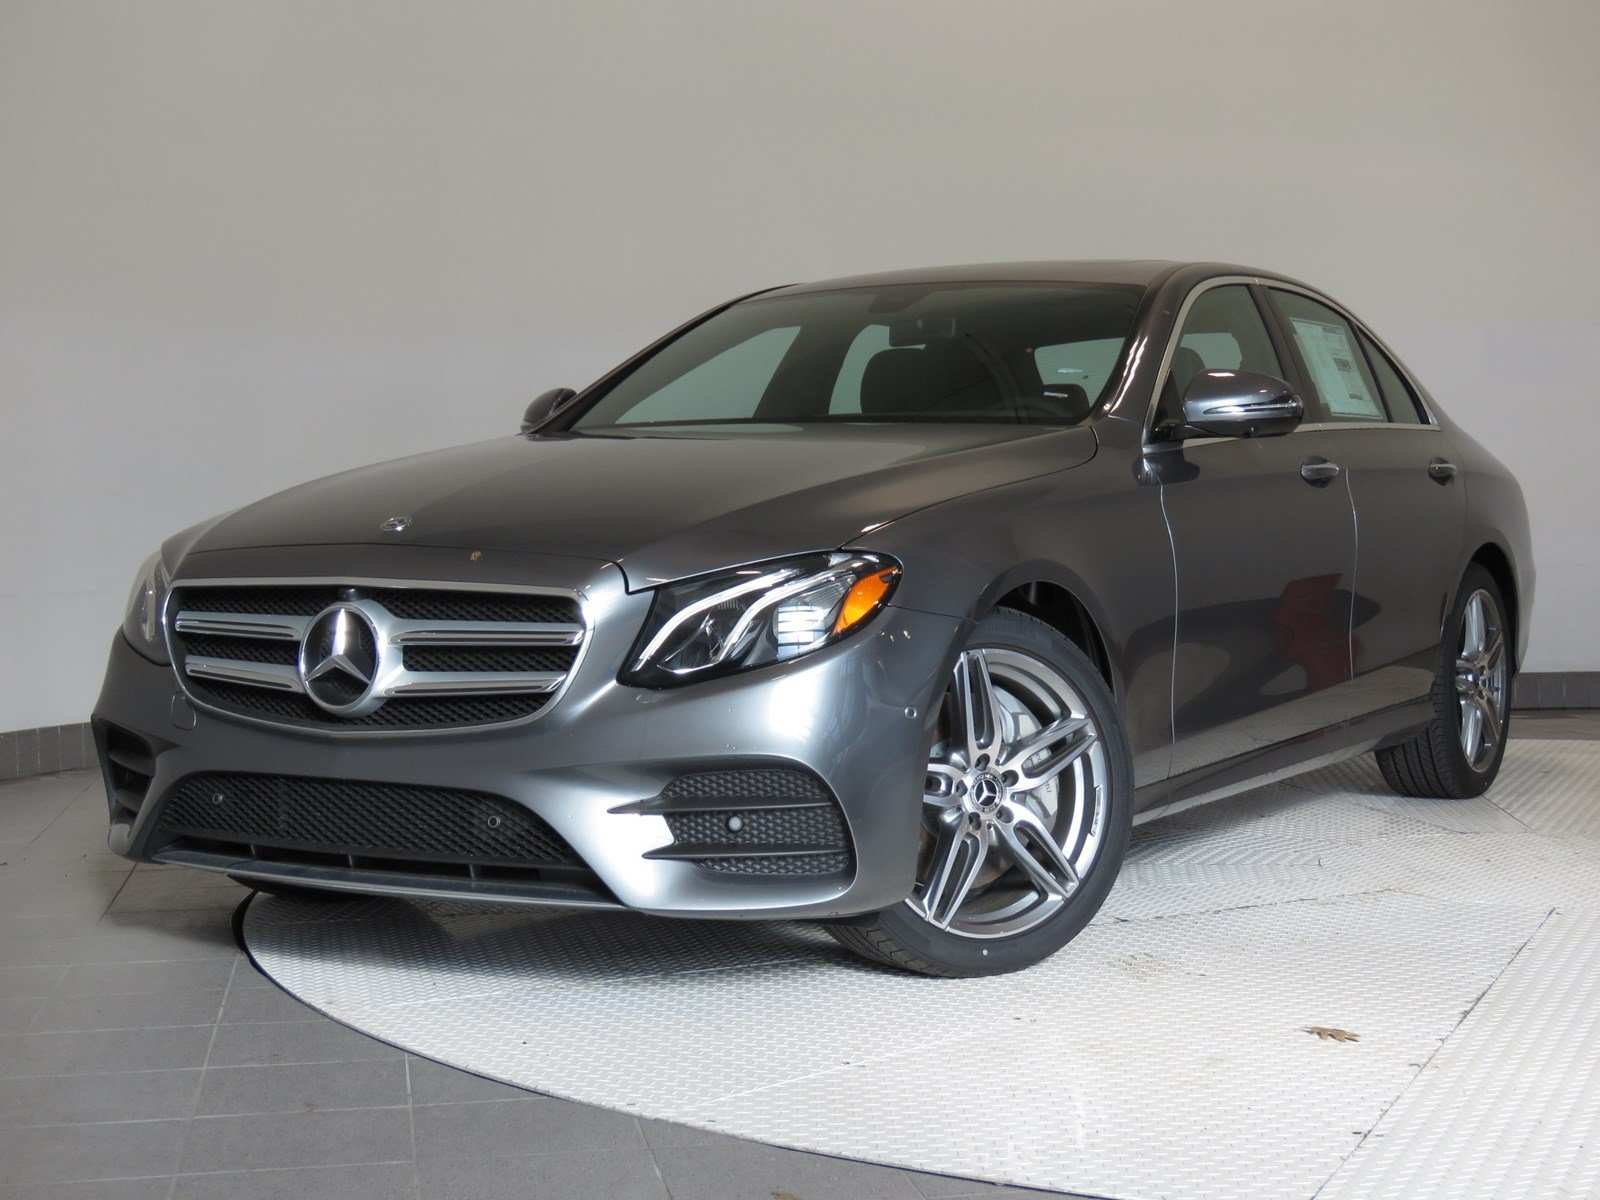 57 The Best 2019 Mercedes Benz E Class Redesign And Review